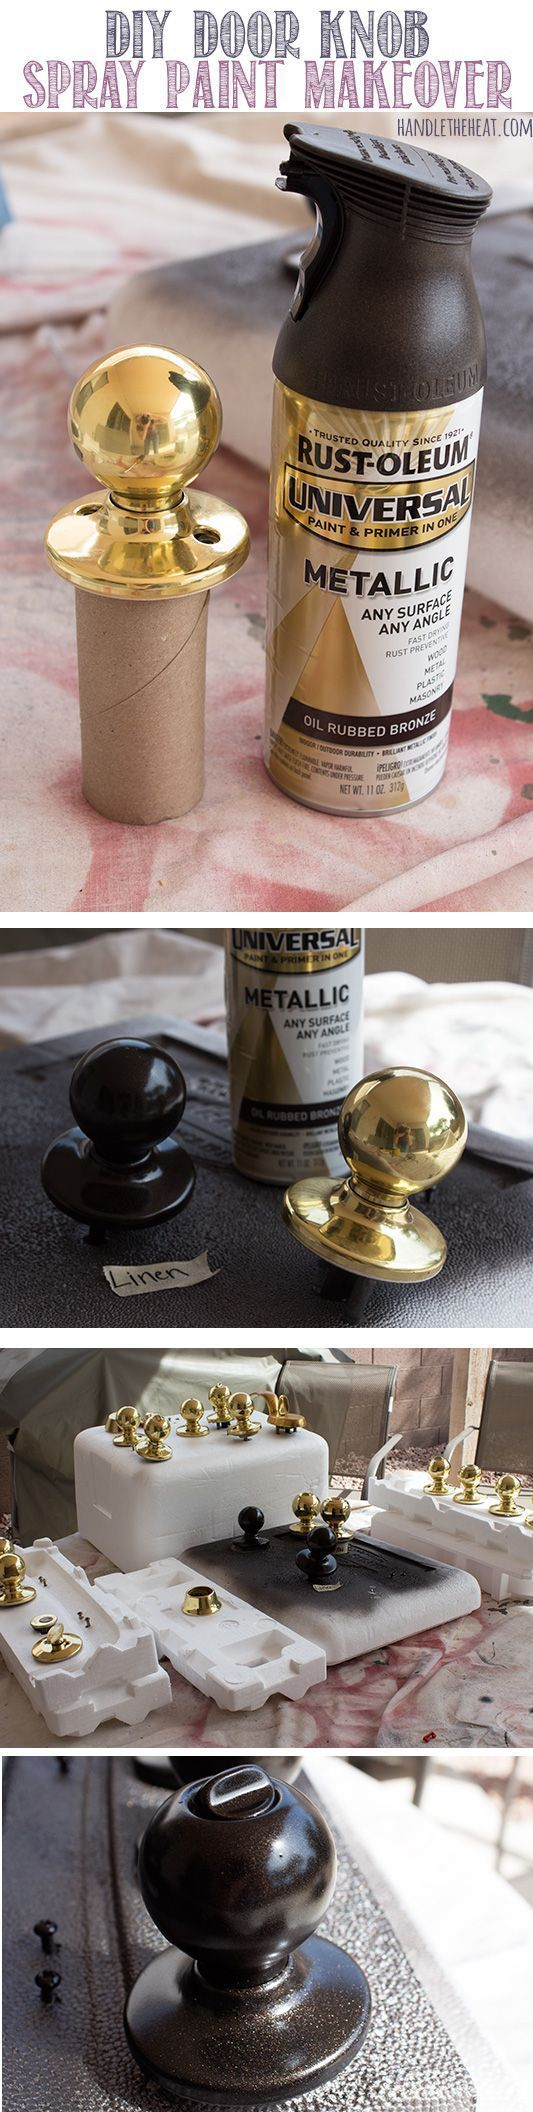 Vintage  Simple DIY Projects To Make Boring Items Look More Chic